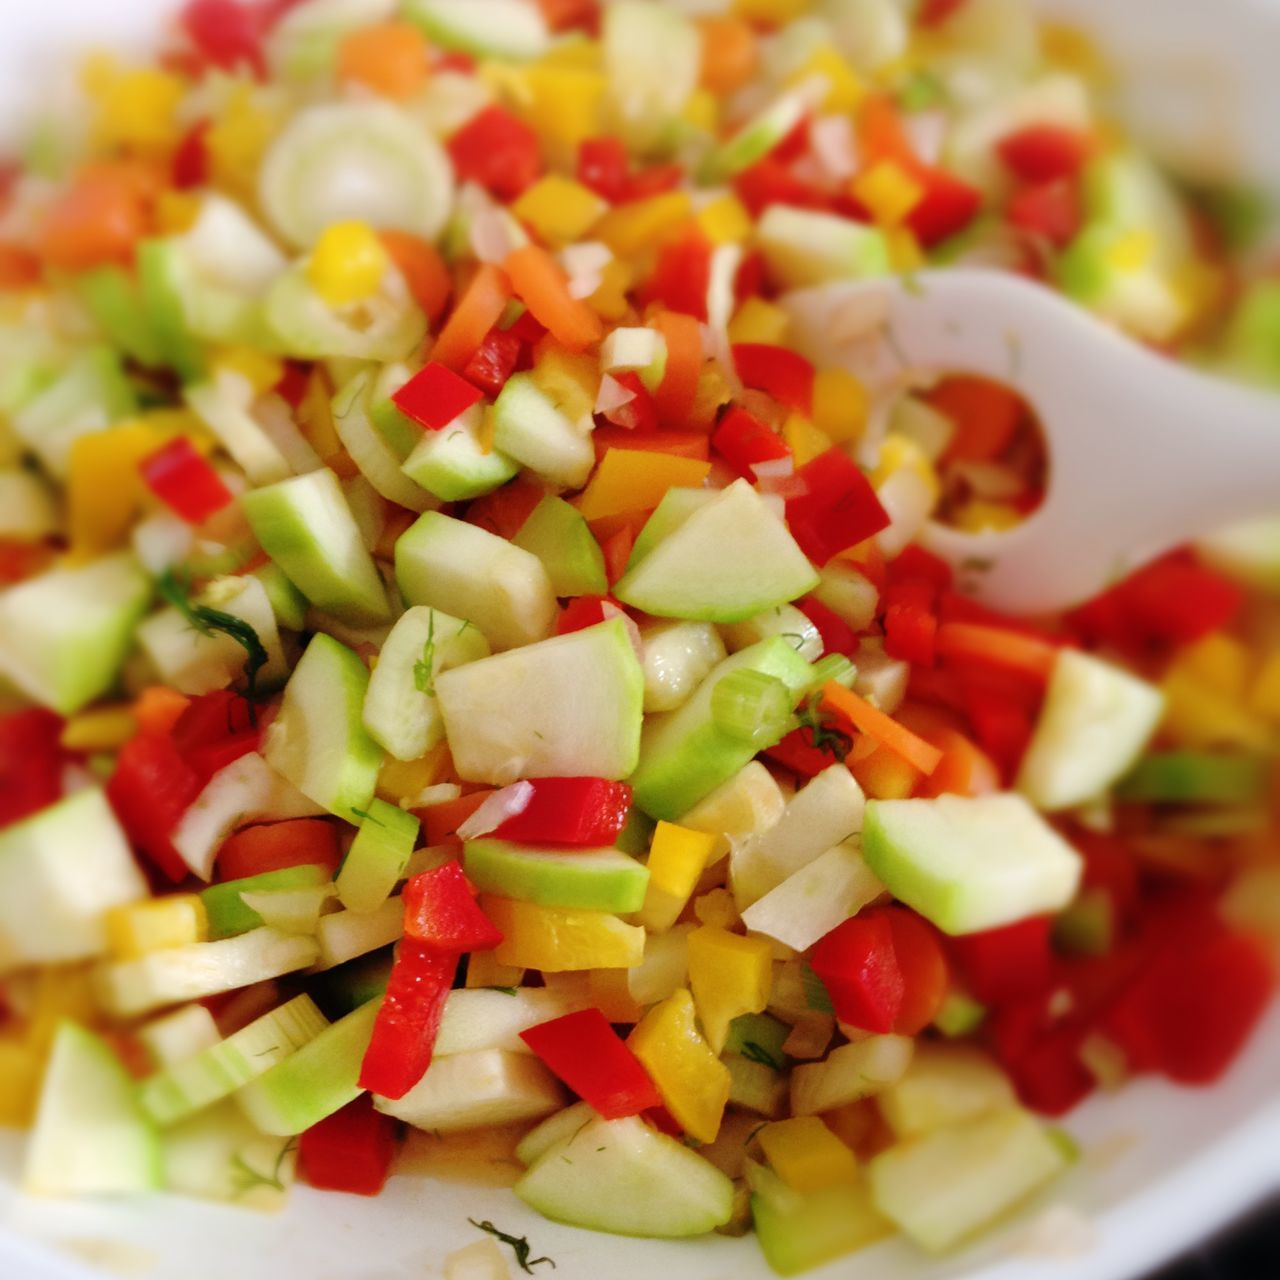 vegetable, food, food and drink, freshness, salad, red, chopped, close-up, healthy eating, bowl, no people, indoors, vegetarian food, ready-to-eat, day